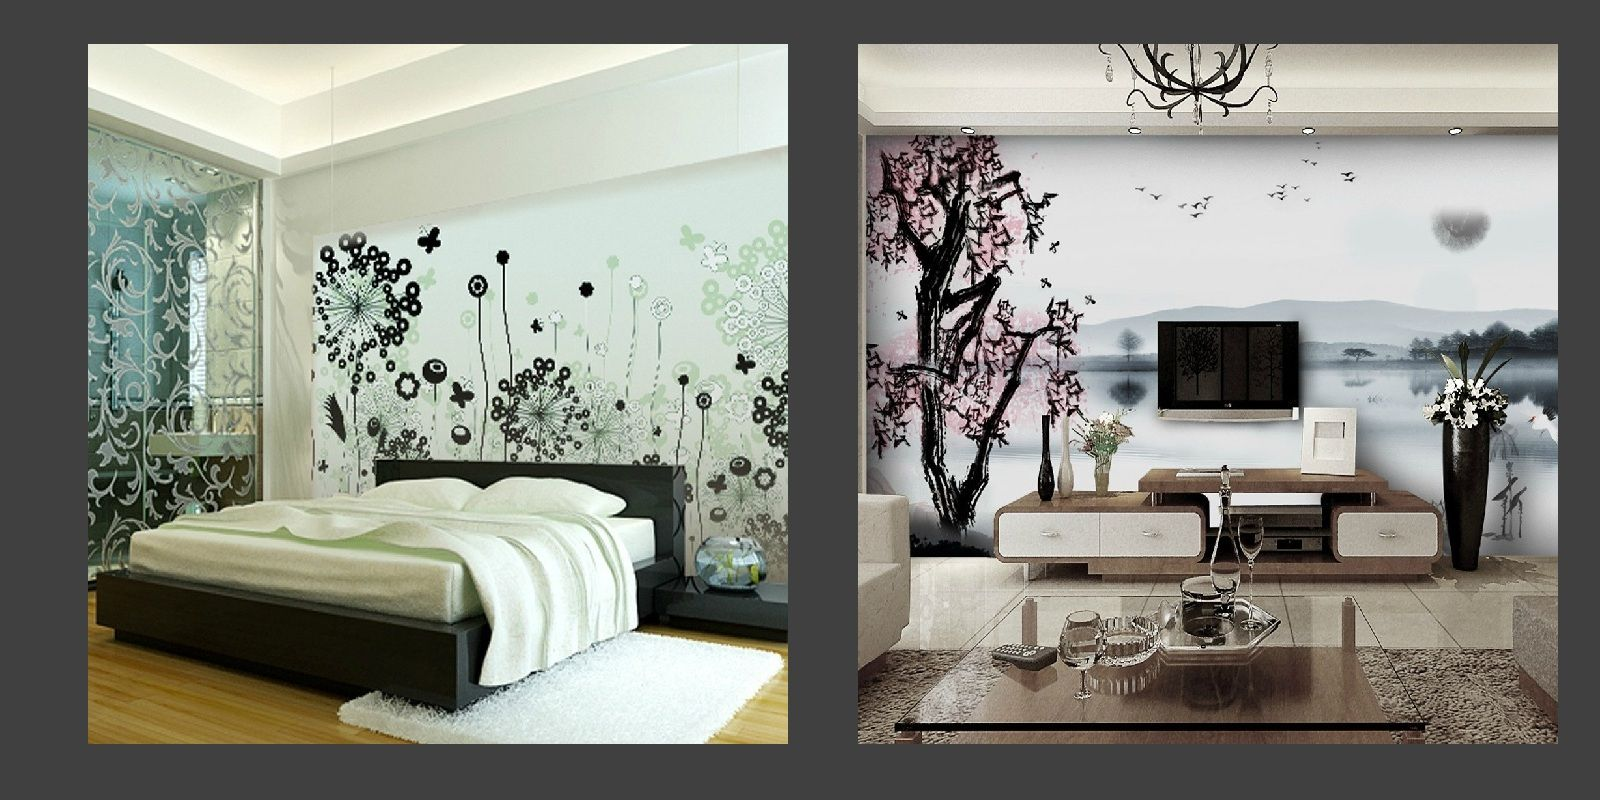 Home Design Wallpaper 3d home interior wallpaper Home Wallpaper Design Patterns